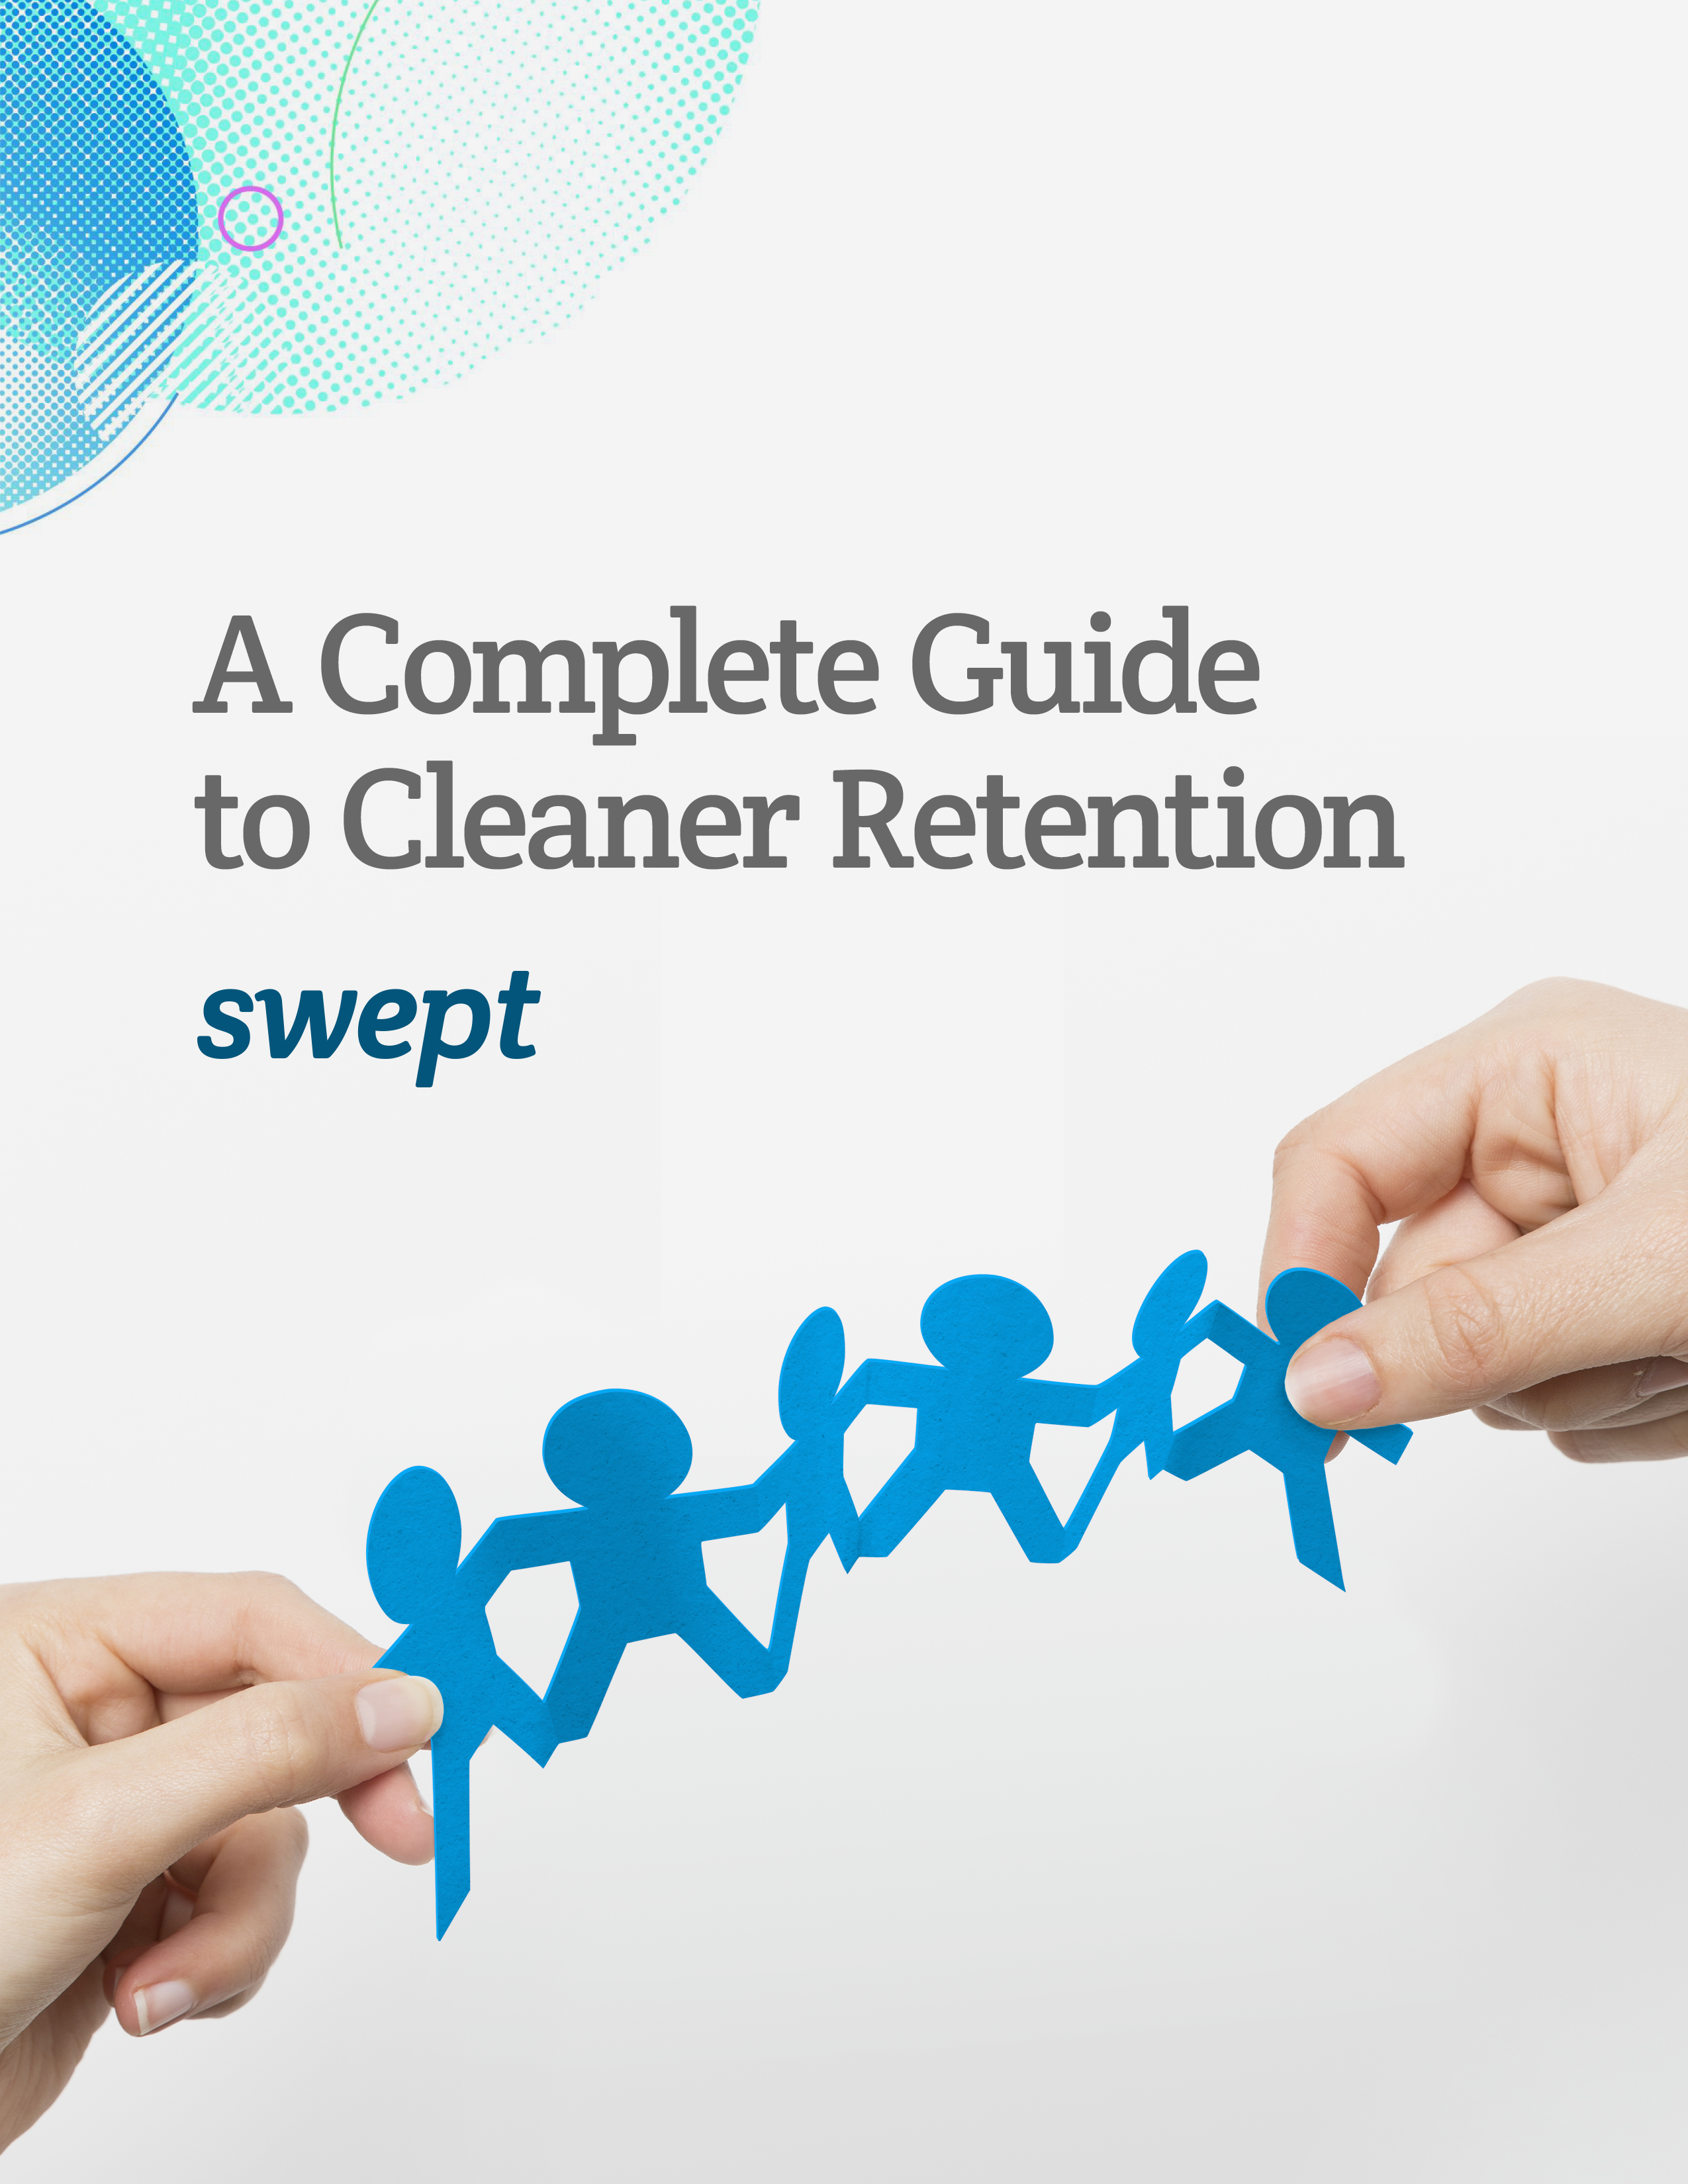 Swept Guide to Cleaner Retention